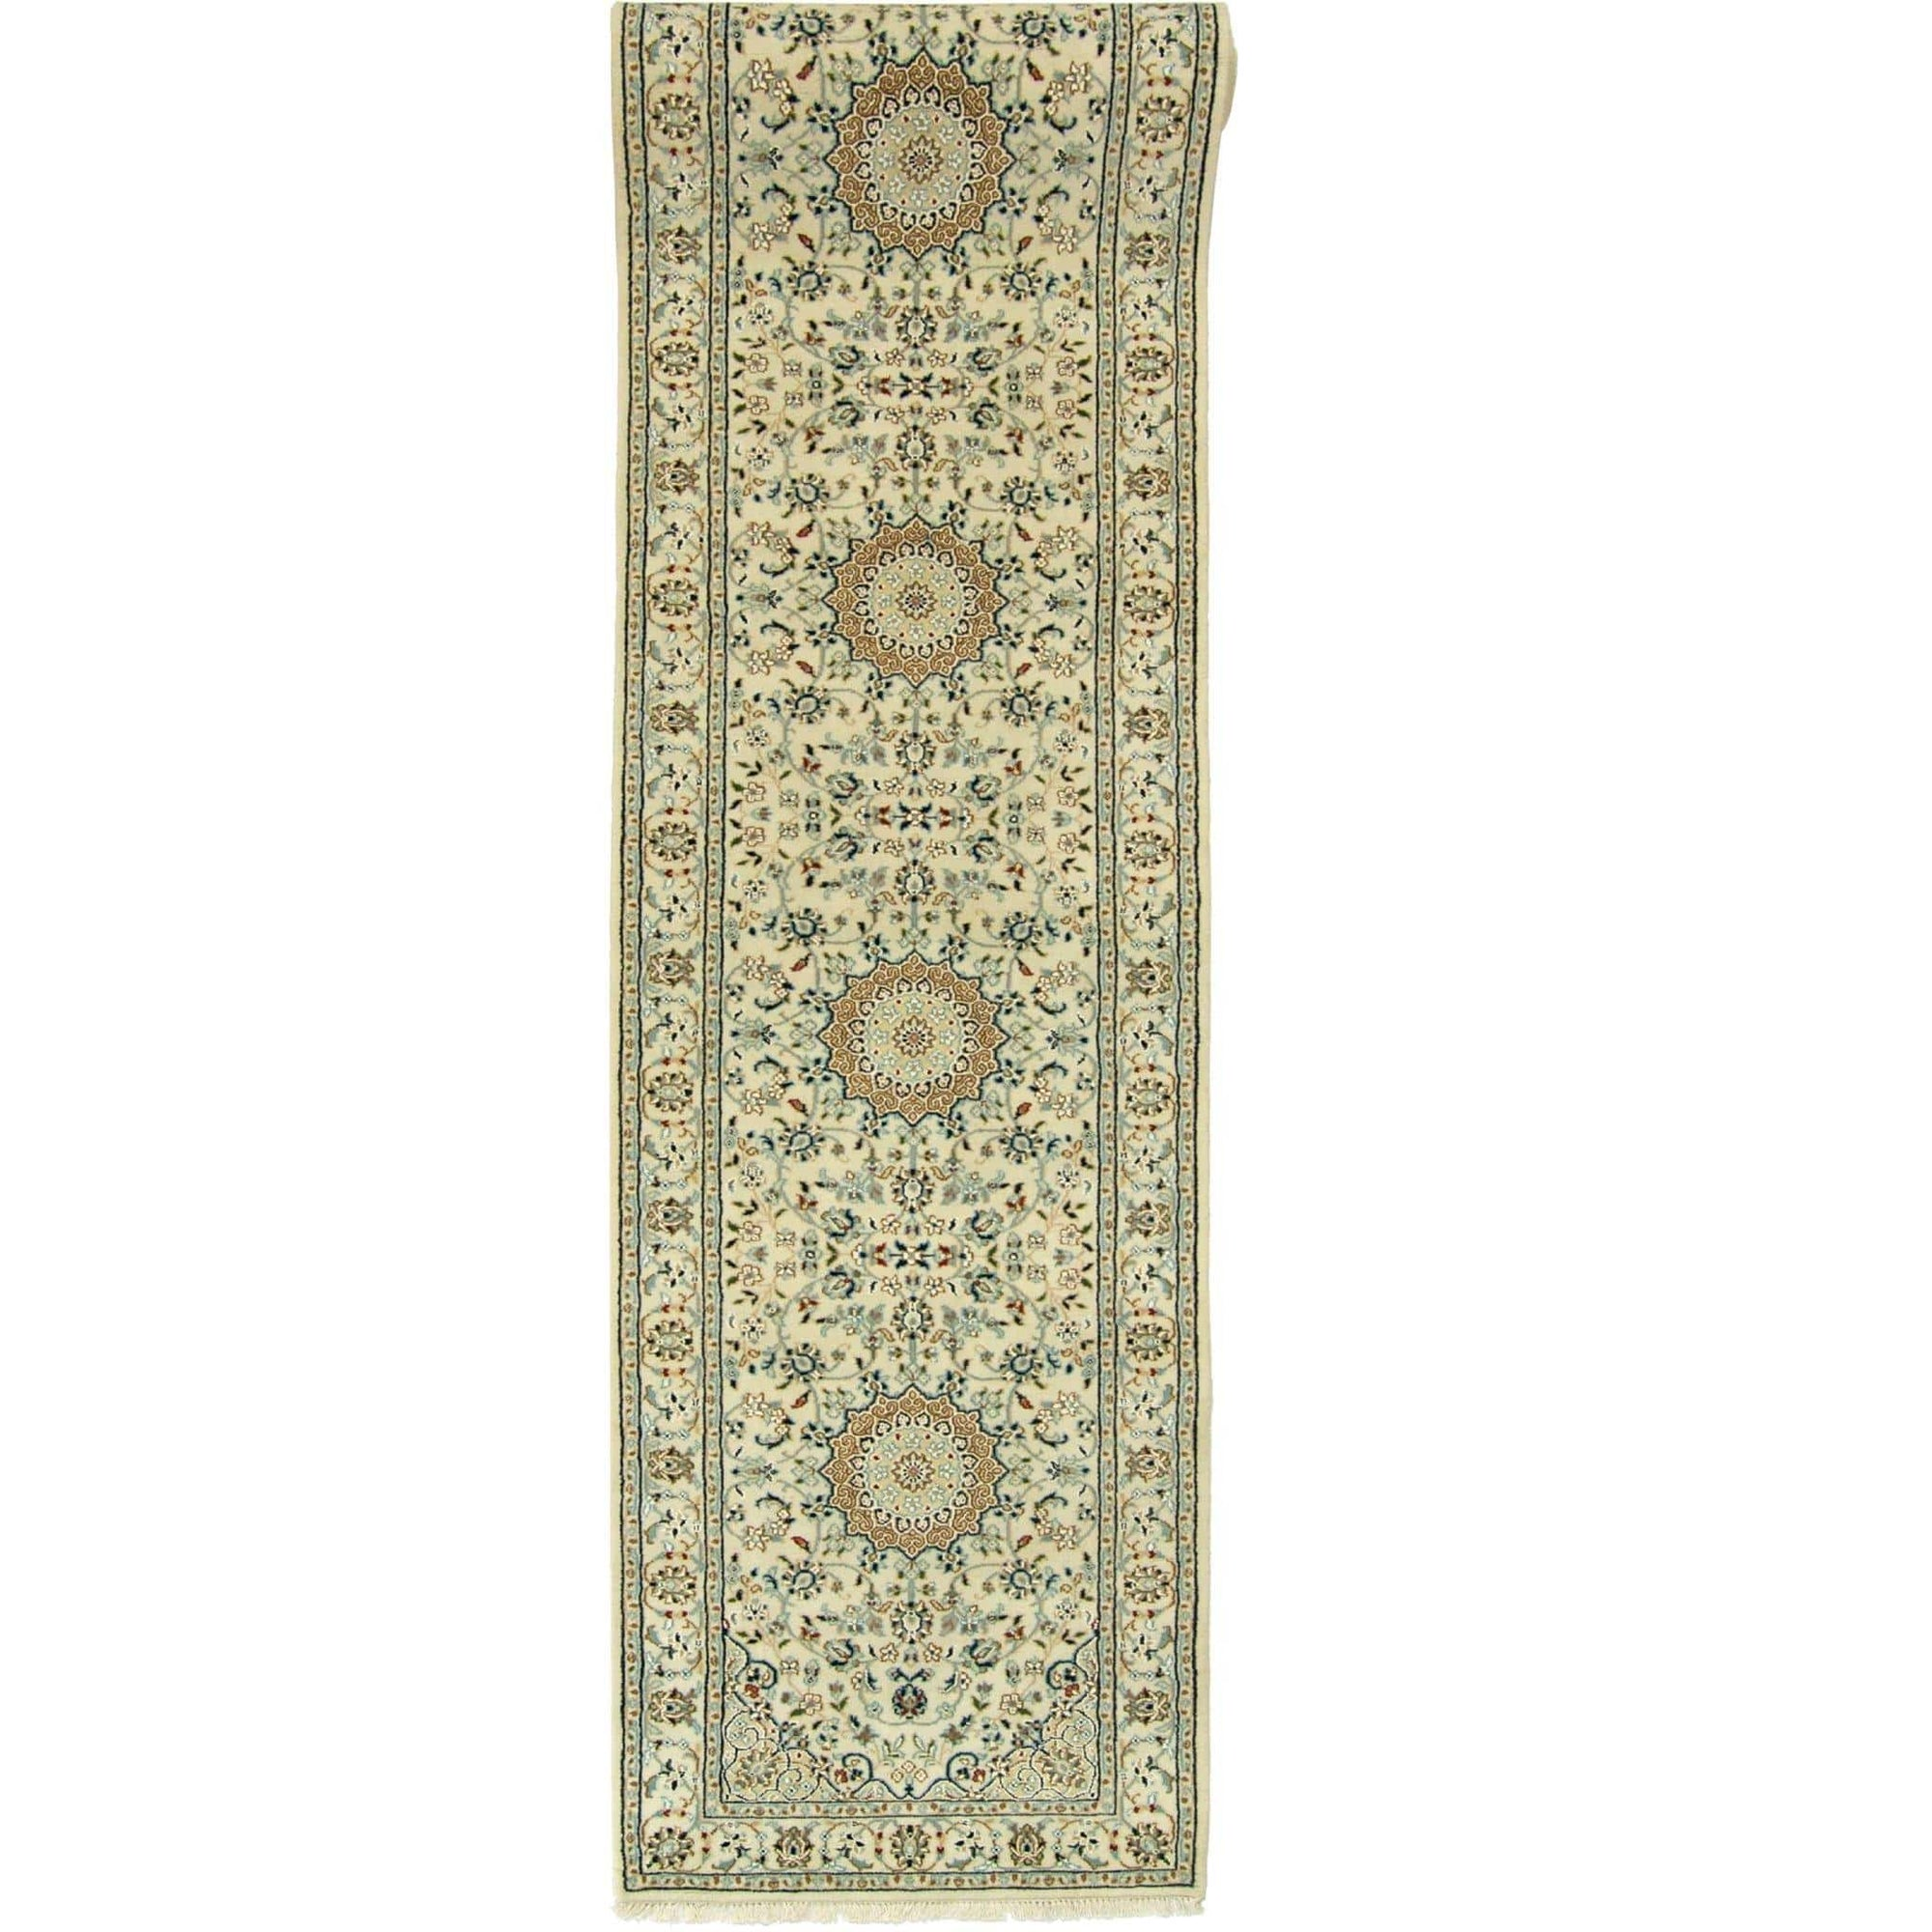 Fine Nain Hand-knotted Wool and Silk Nain Runner 82cm x 376cm Persian-Rug | House-of-Haghi | NewMarket | Auckland | NZ | Handmade Persian Rugs | Hand Knotted Persian Rugs